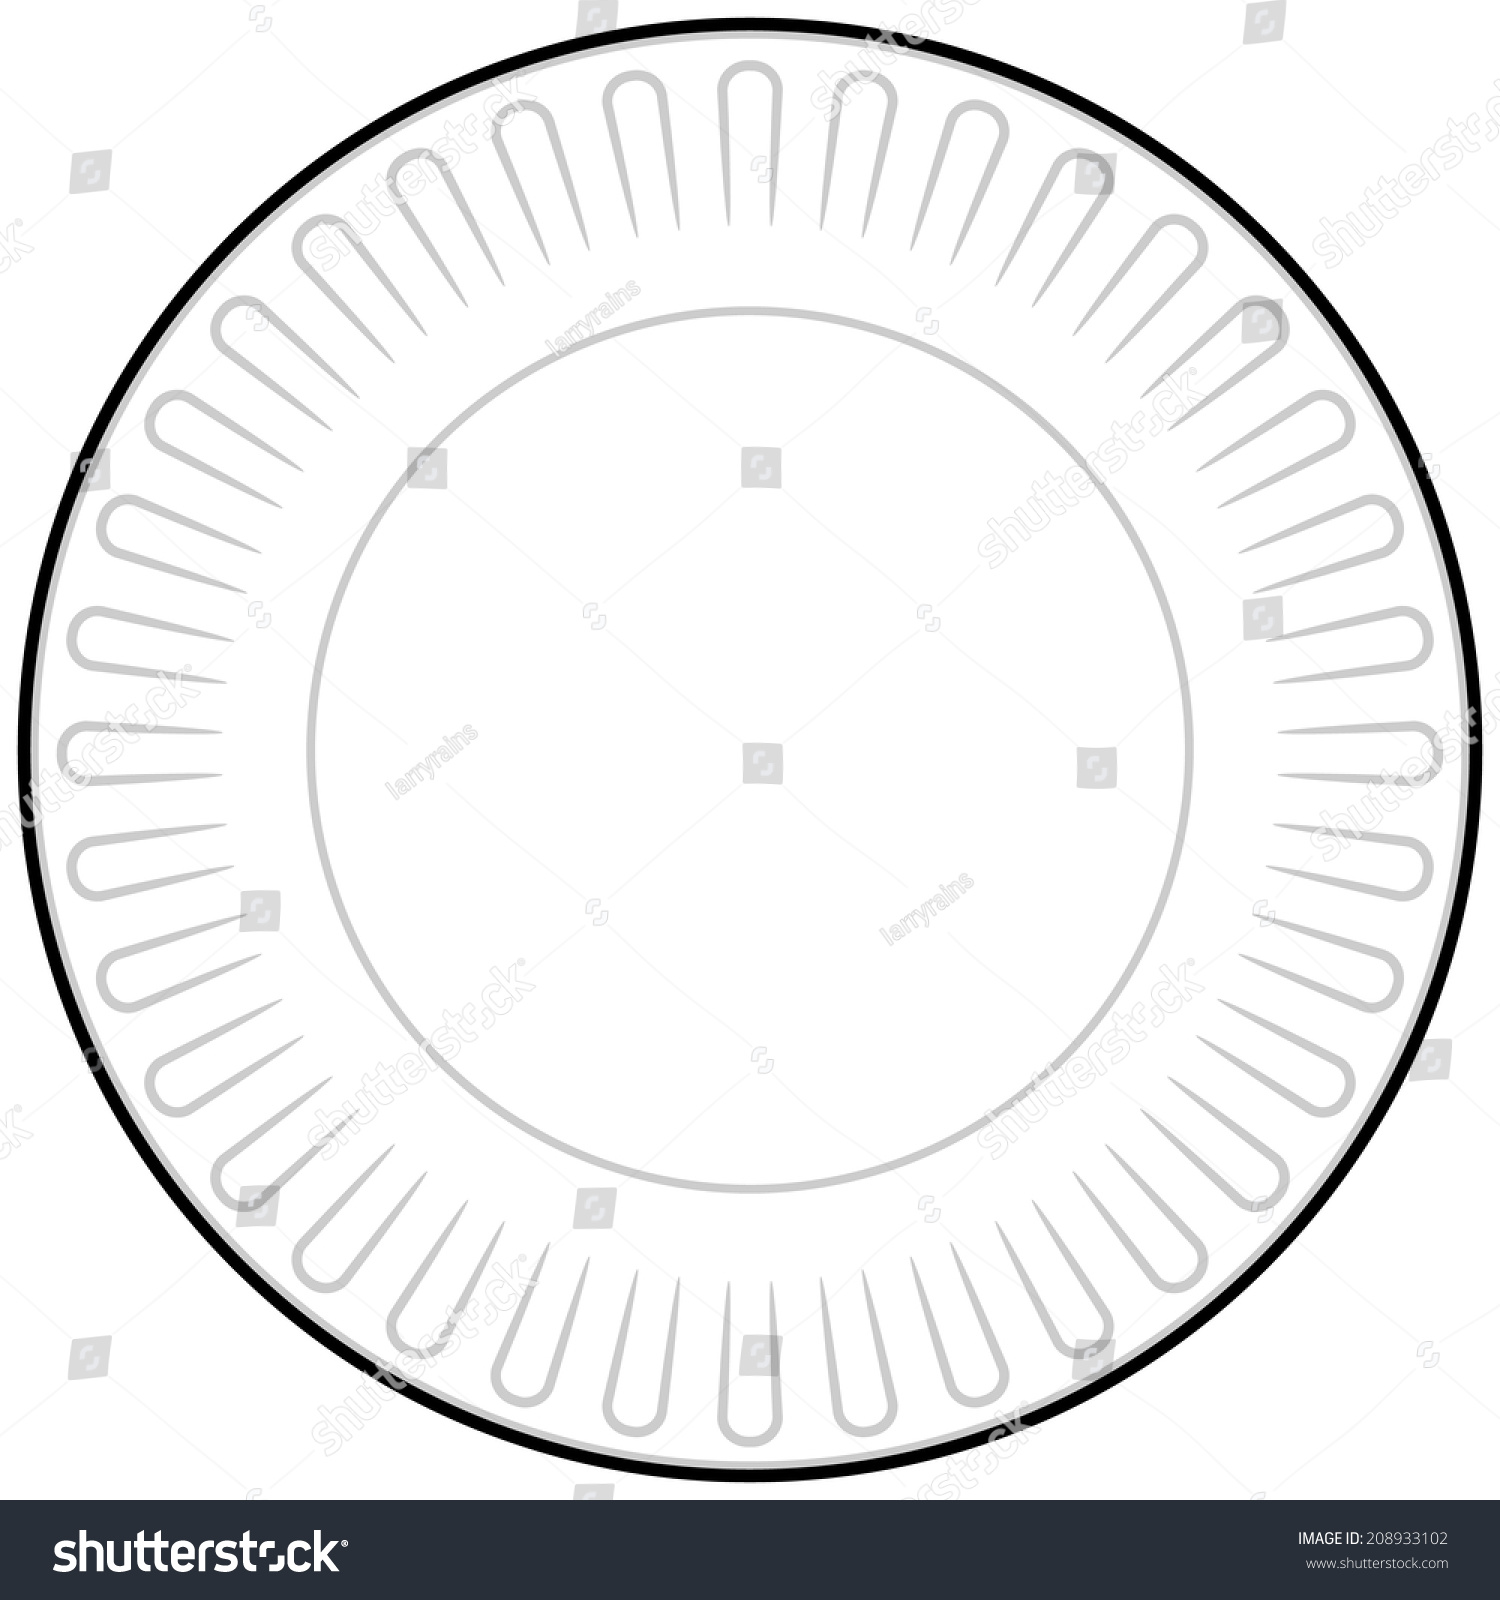 Cookout border clipart hot dog cookout invite stock vector art - Paper Plate